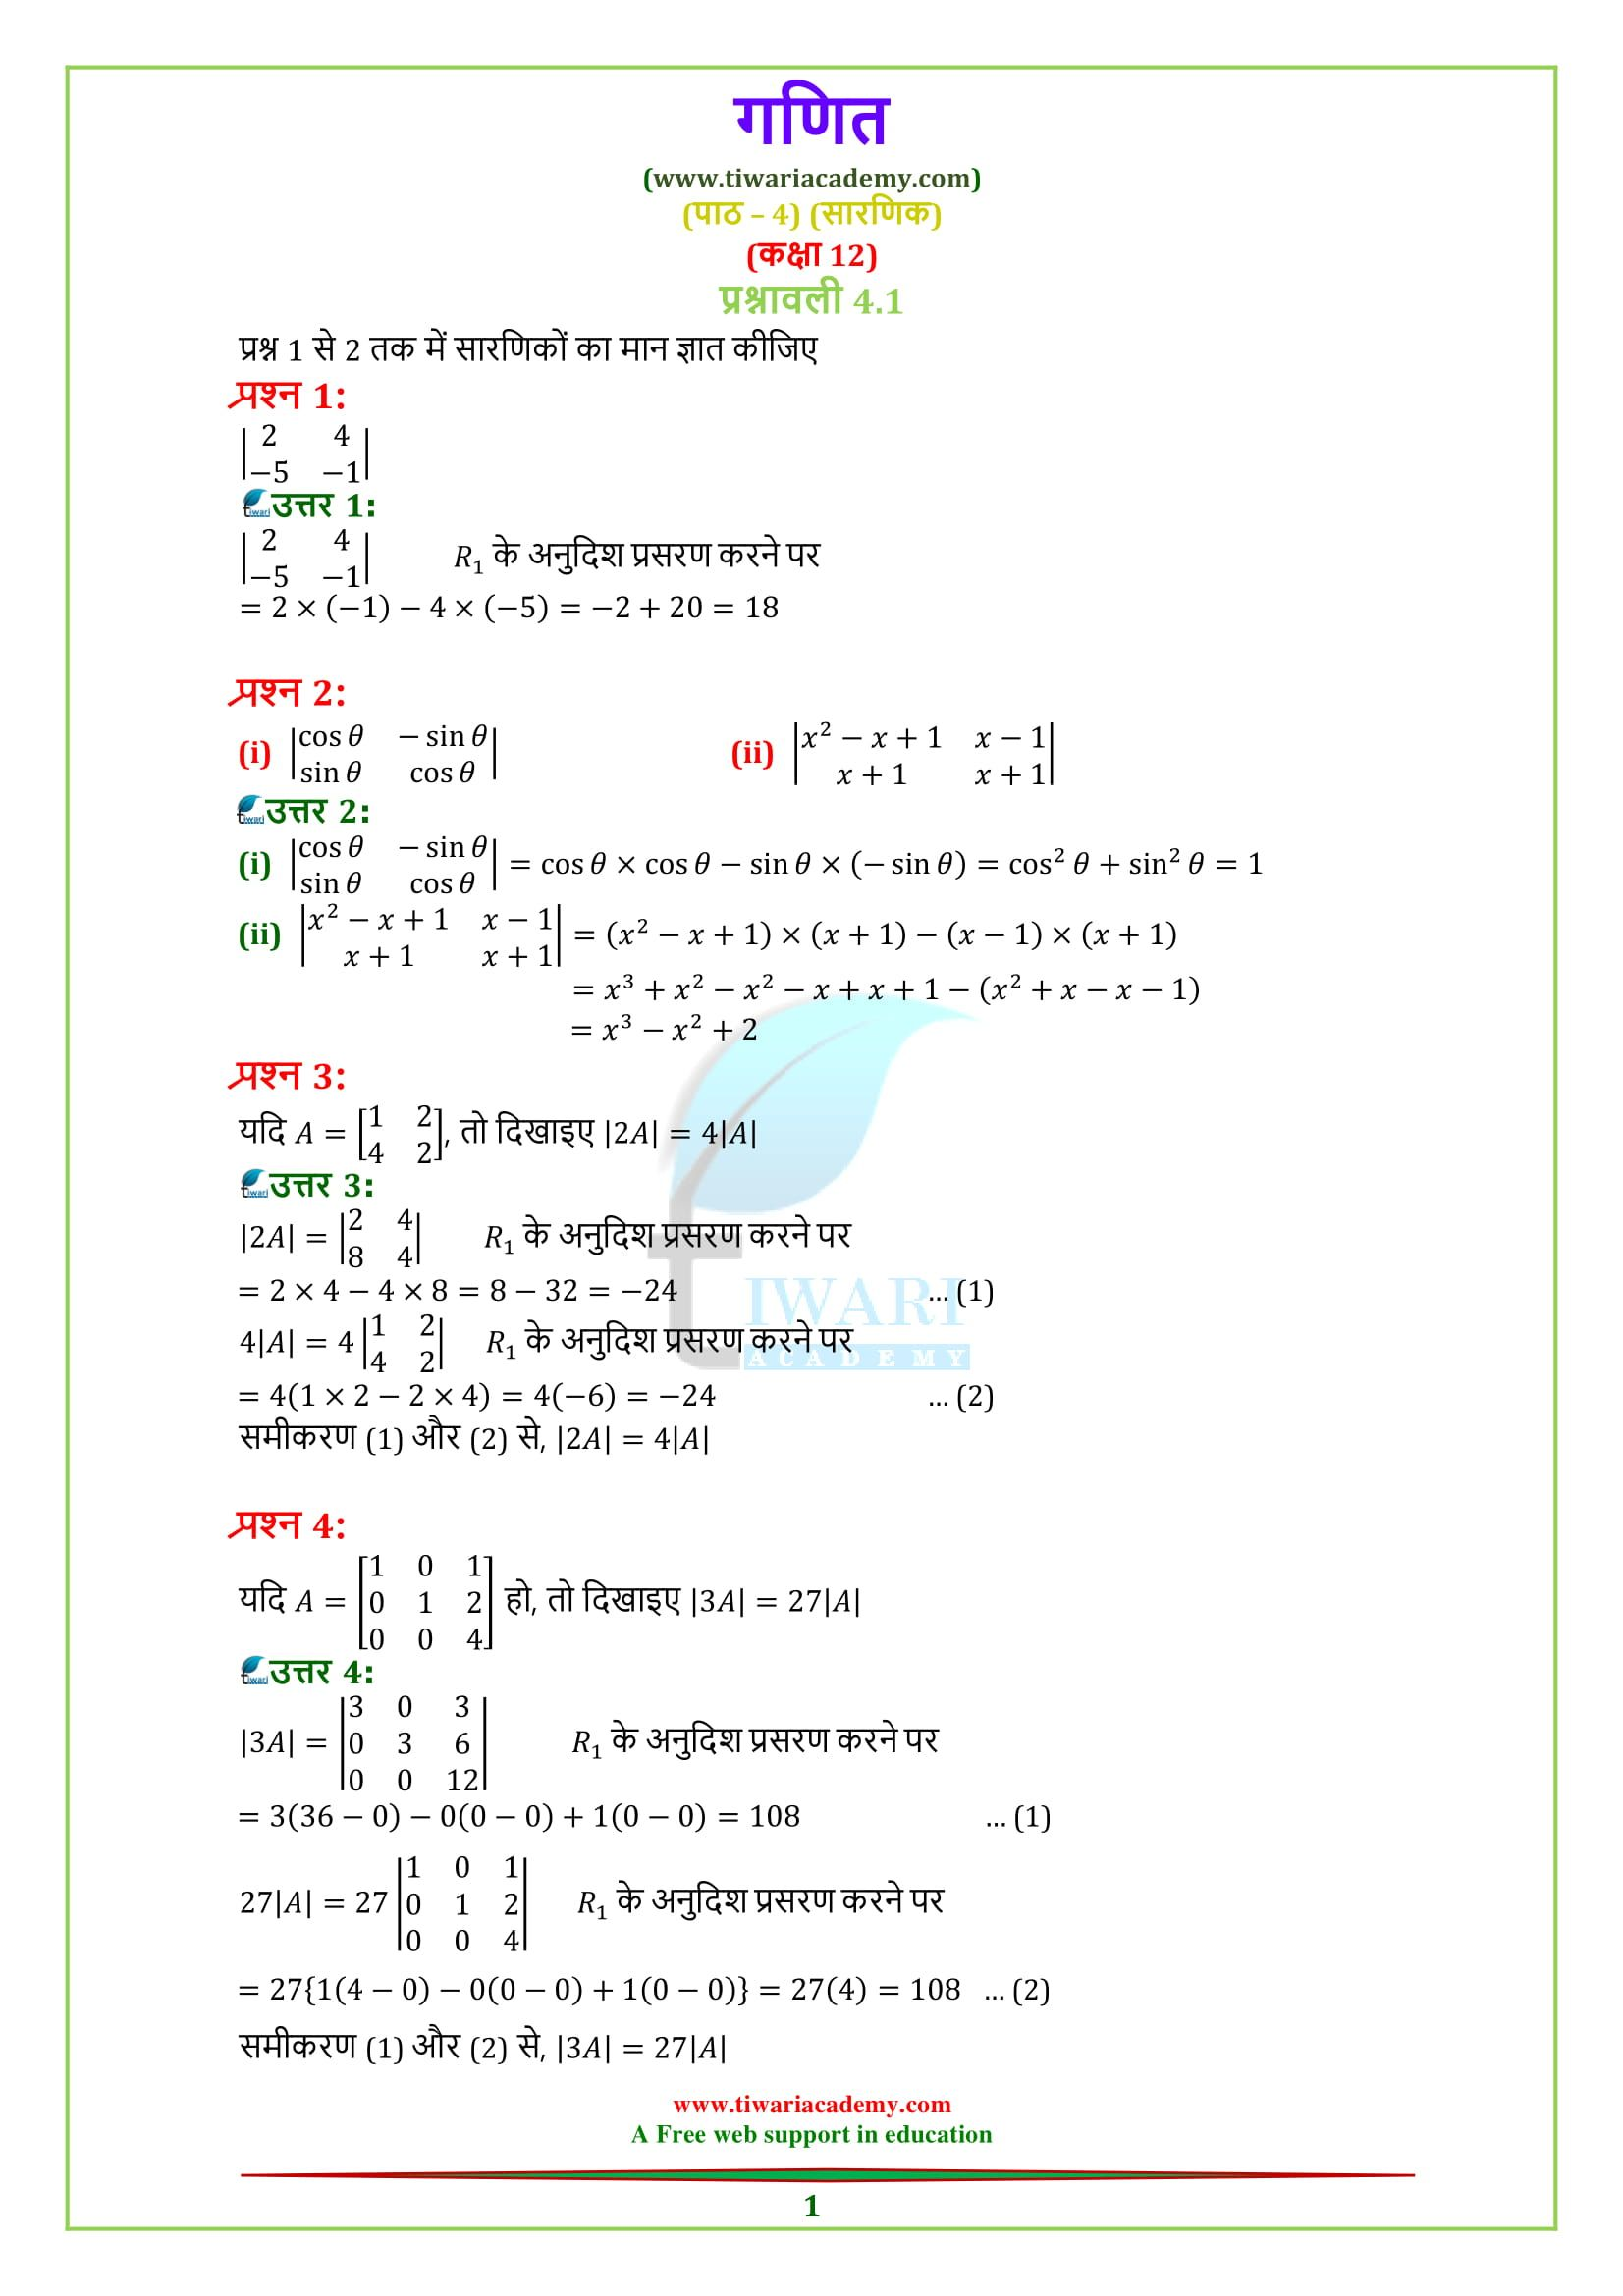 NCERT Solutions for Class 12 Maths Chapter 4 Exercise 4.1